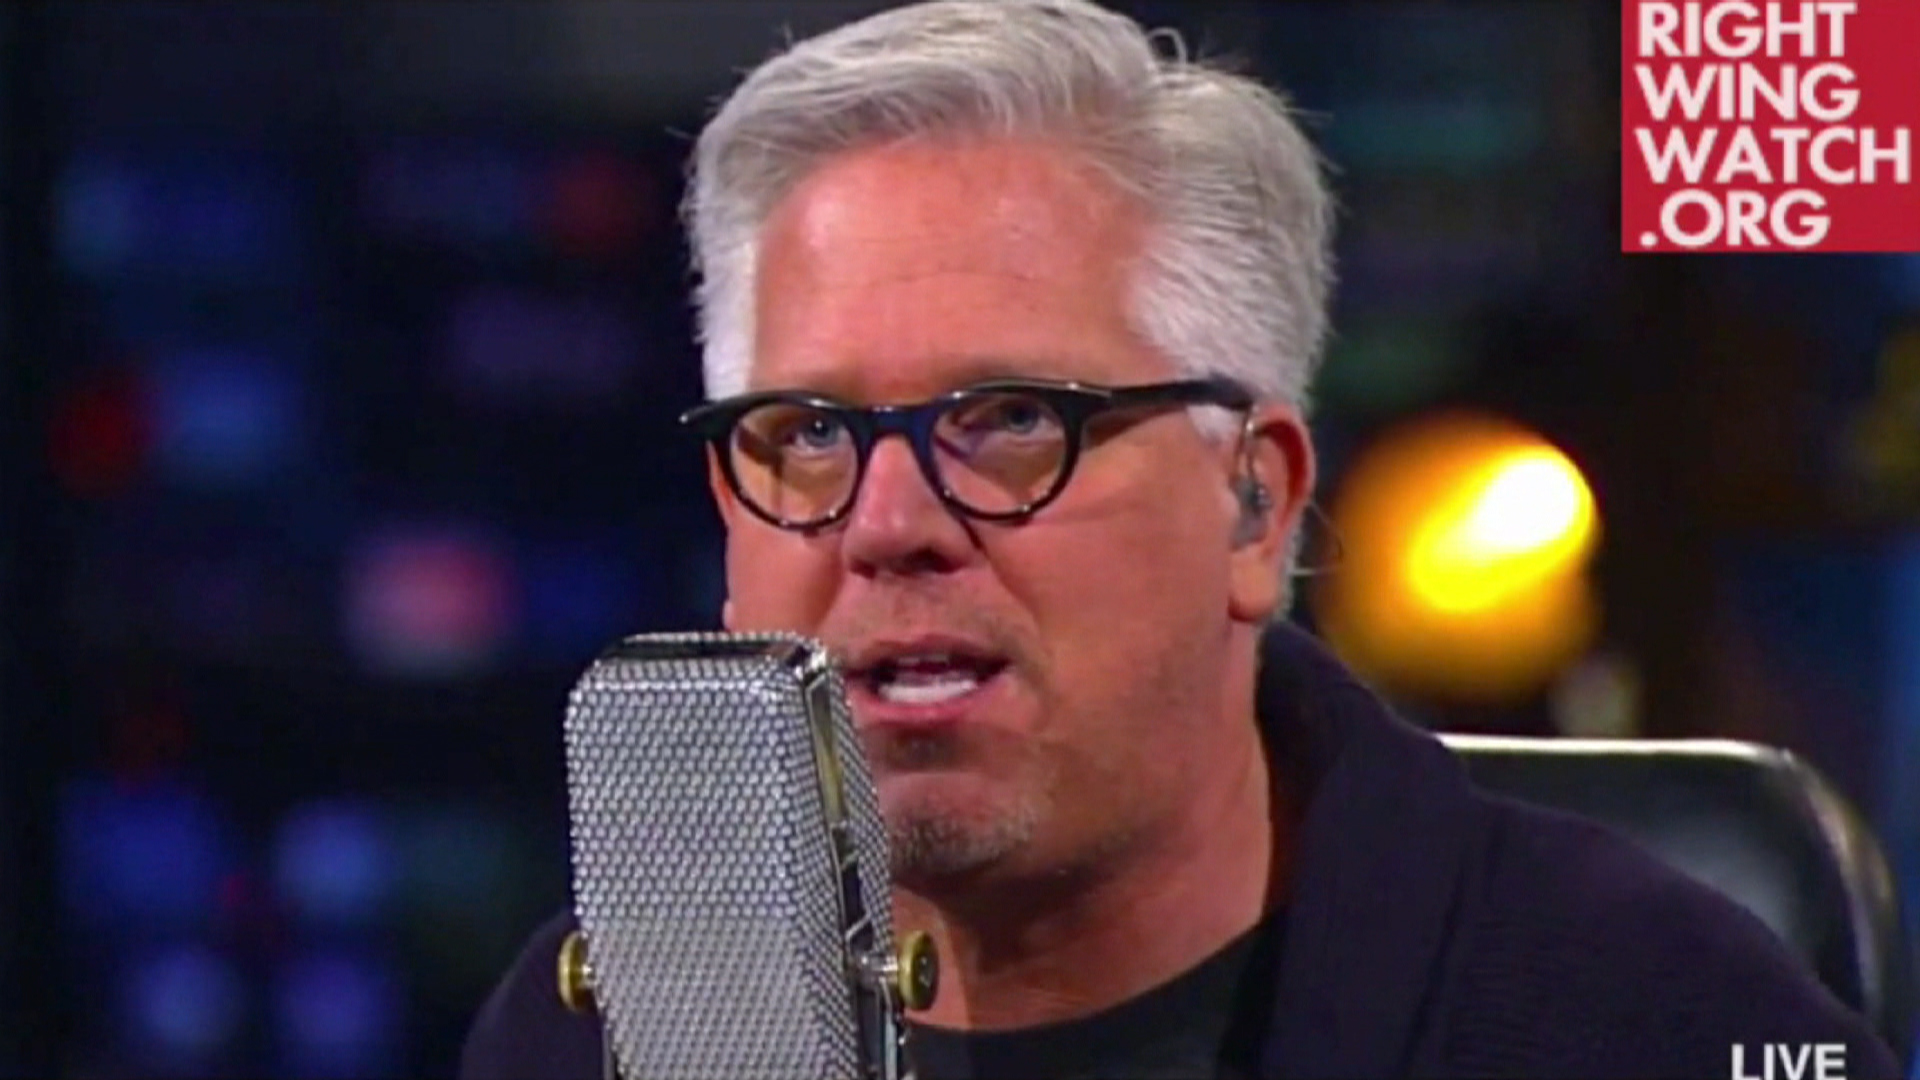 Beck's twisted way of looking at ACA numbers